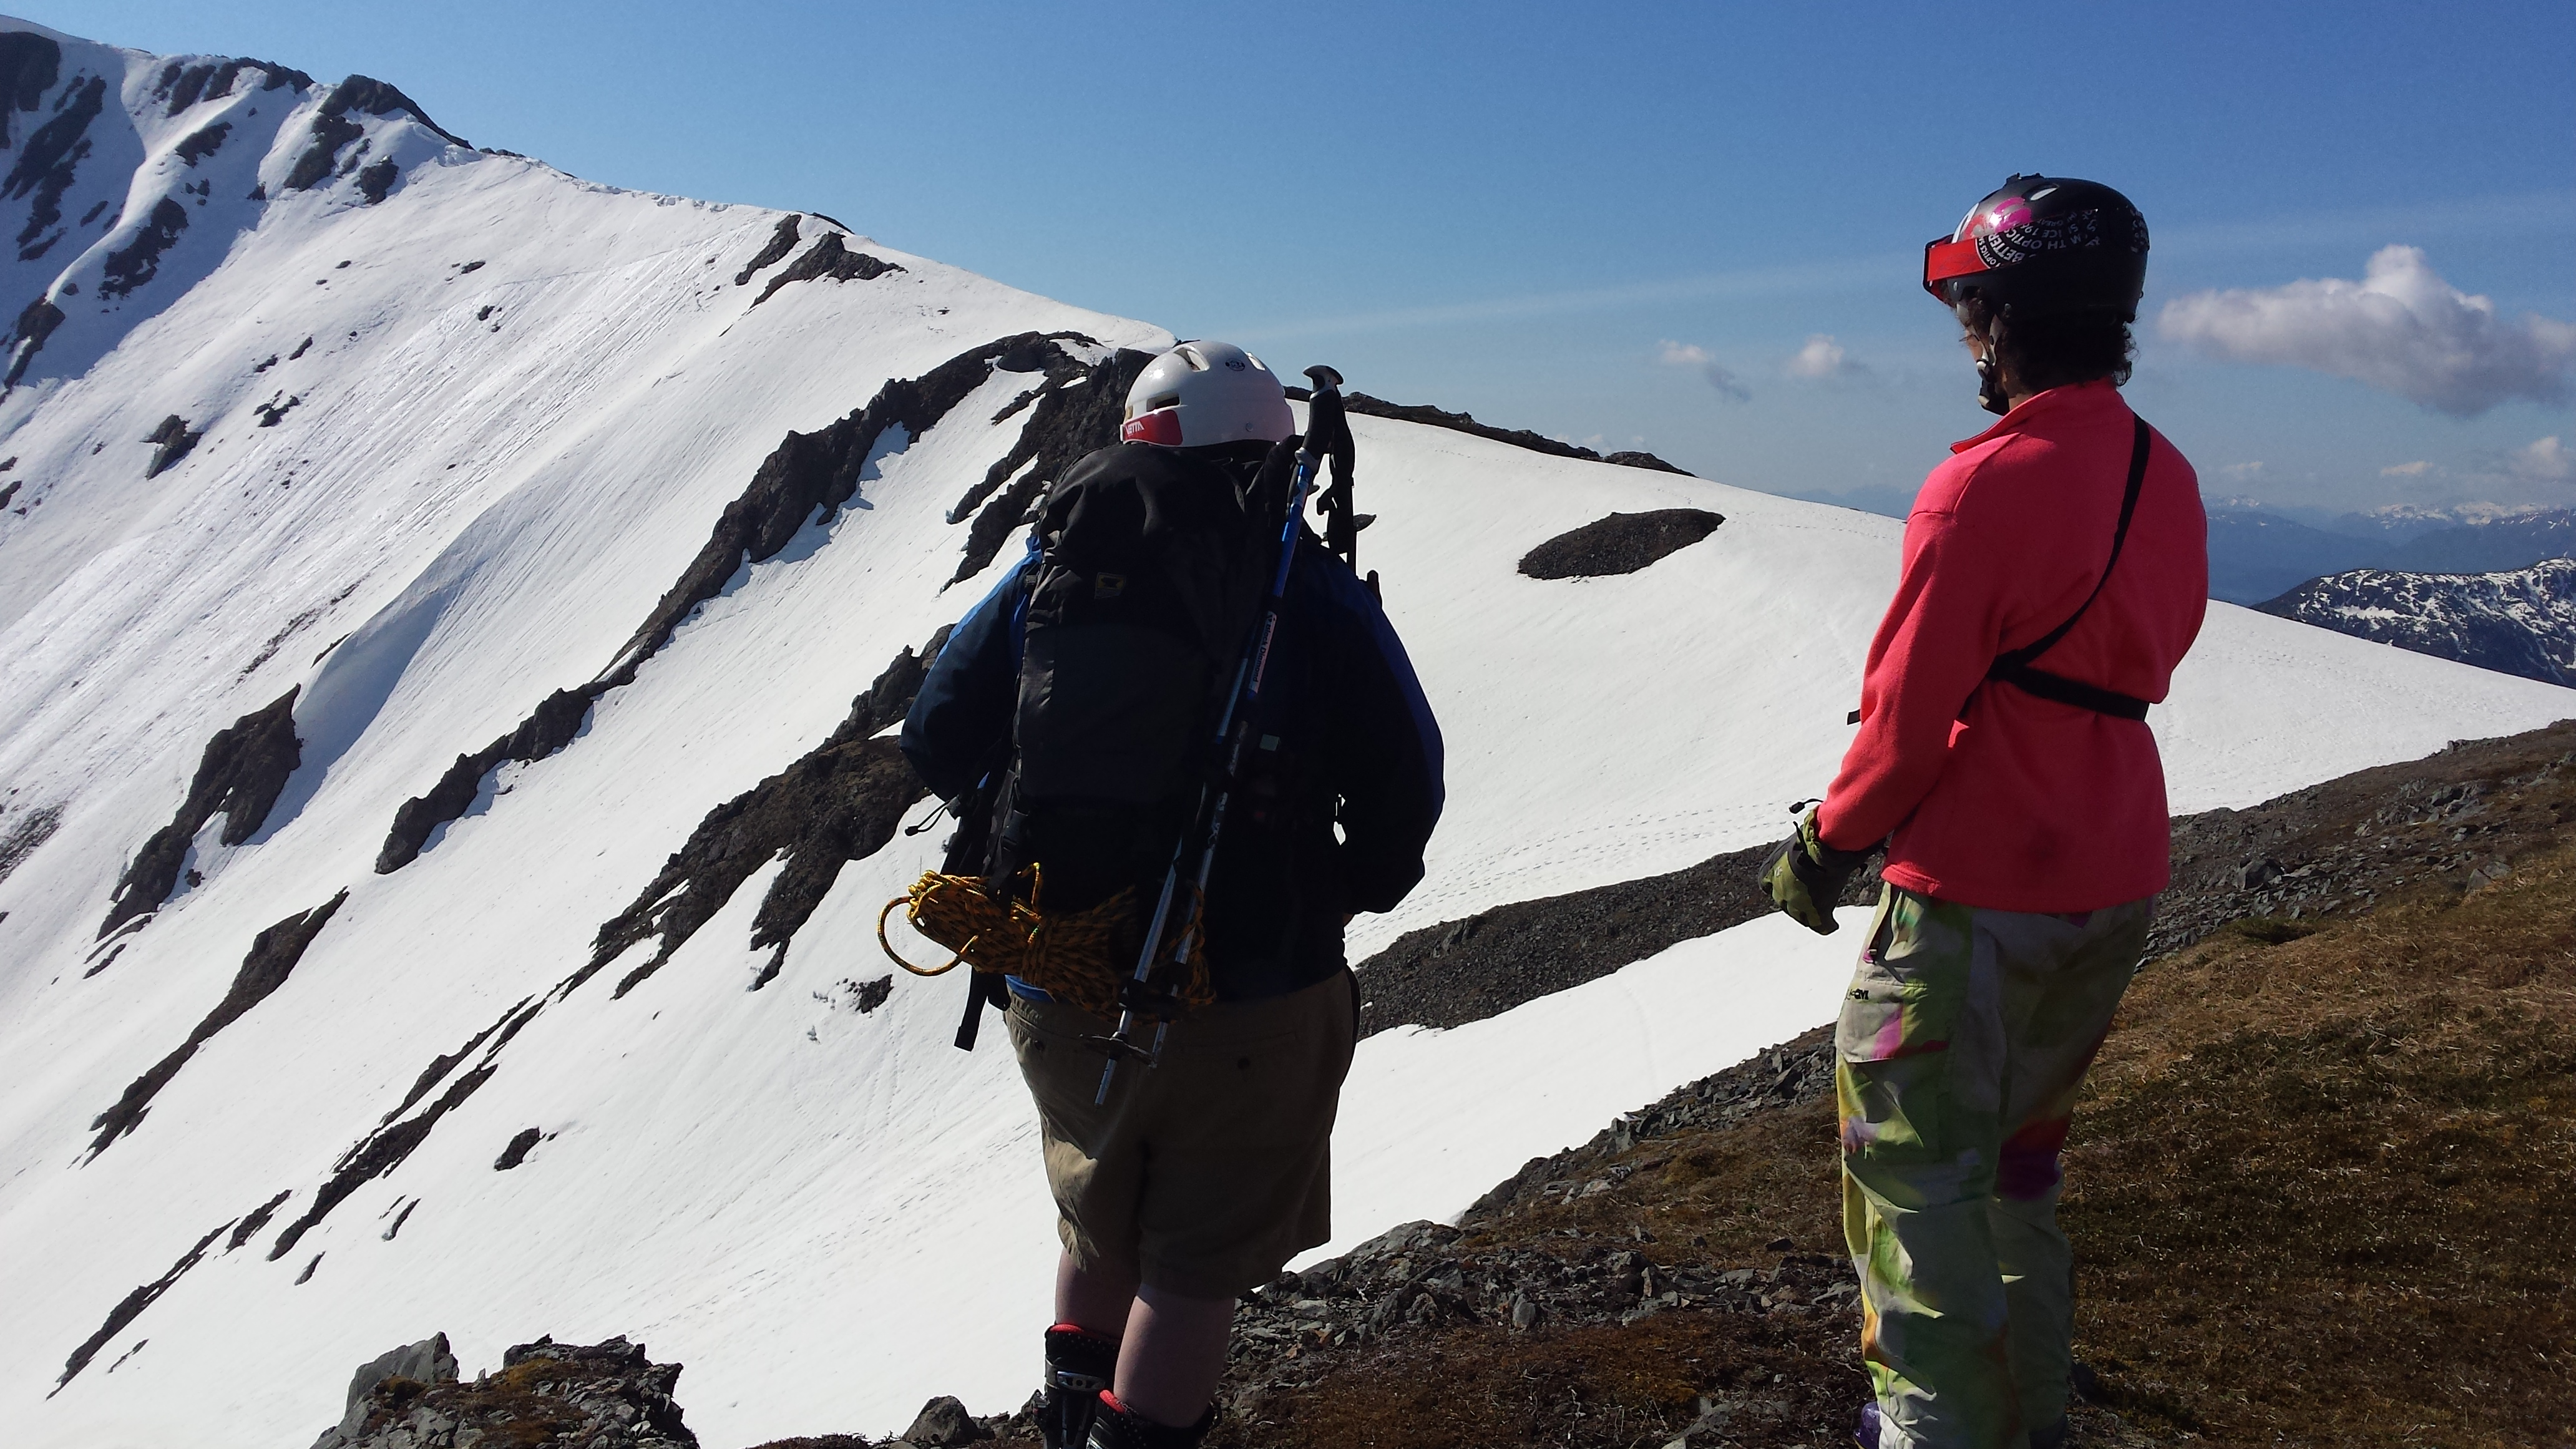 Volunteer search skiers were dropped off by helicopter on Icy Gulch Friday to look for missing hiker Sharon Buis. (Photo courtesy of Luke Holton)